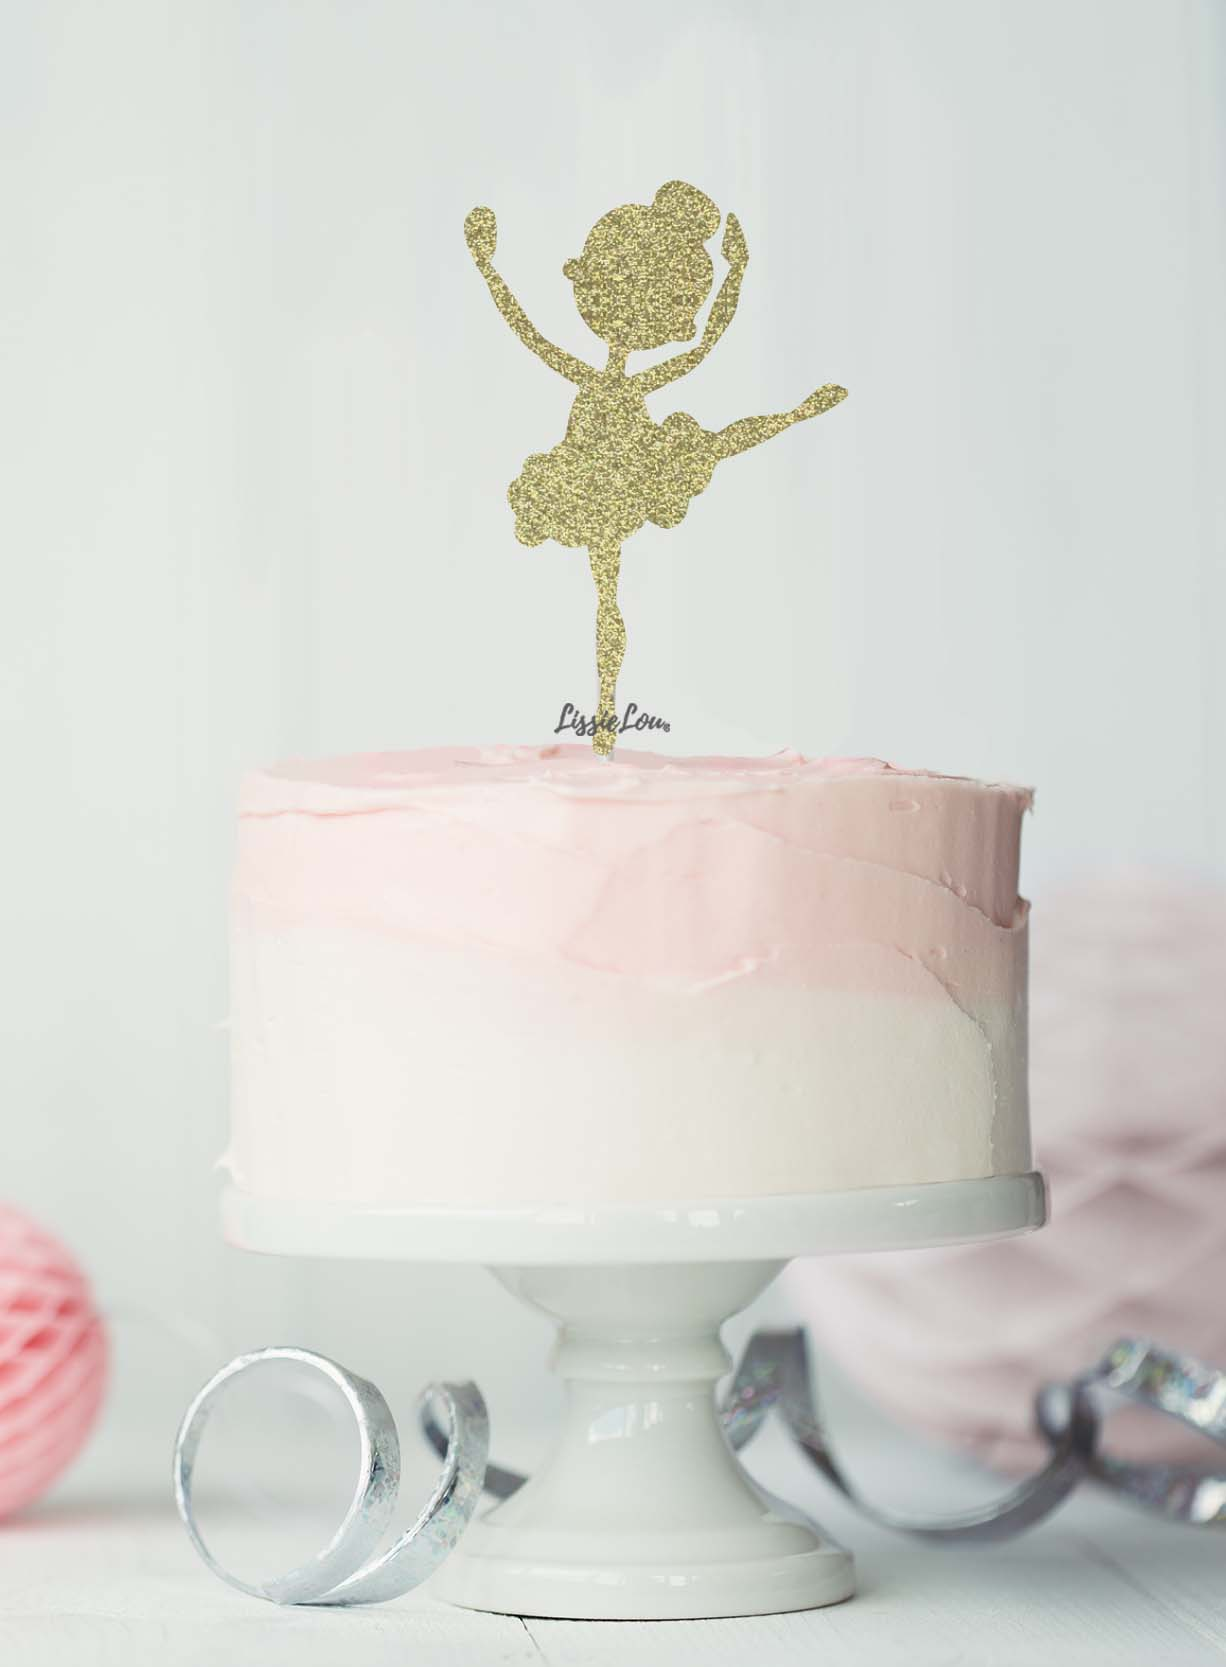 Admirable Ballerina Dancing Birthday Cake Topper Glitter Card Lissielou Personalised Birthday Cards Cominlily Jamesorg